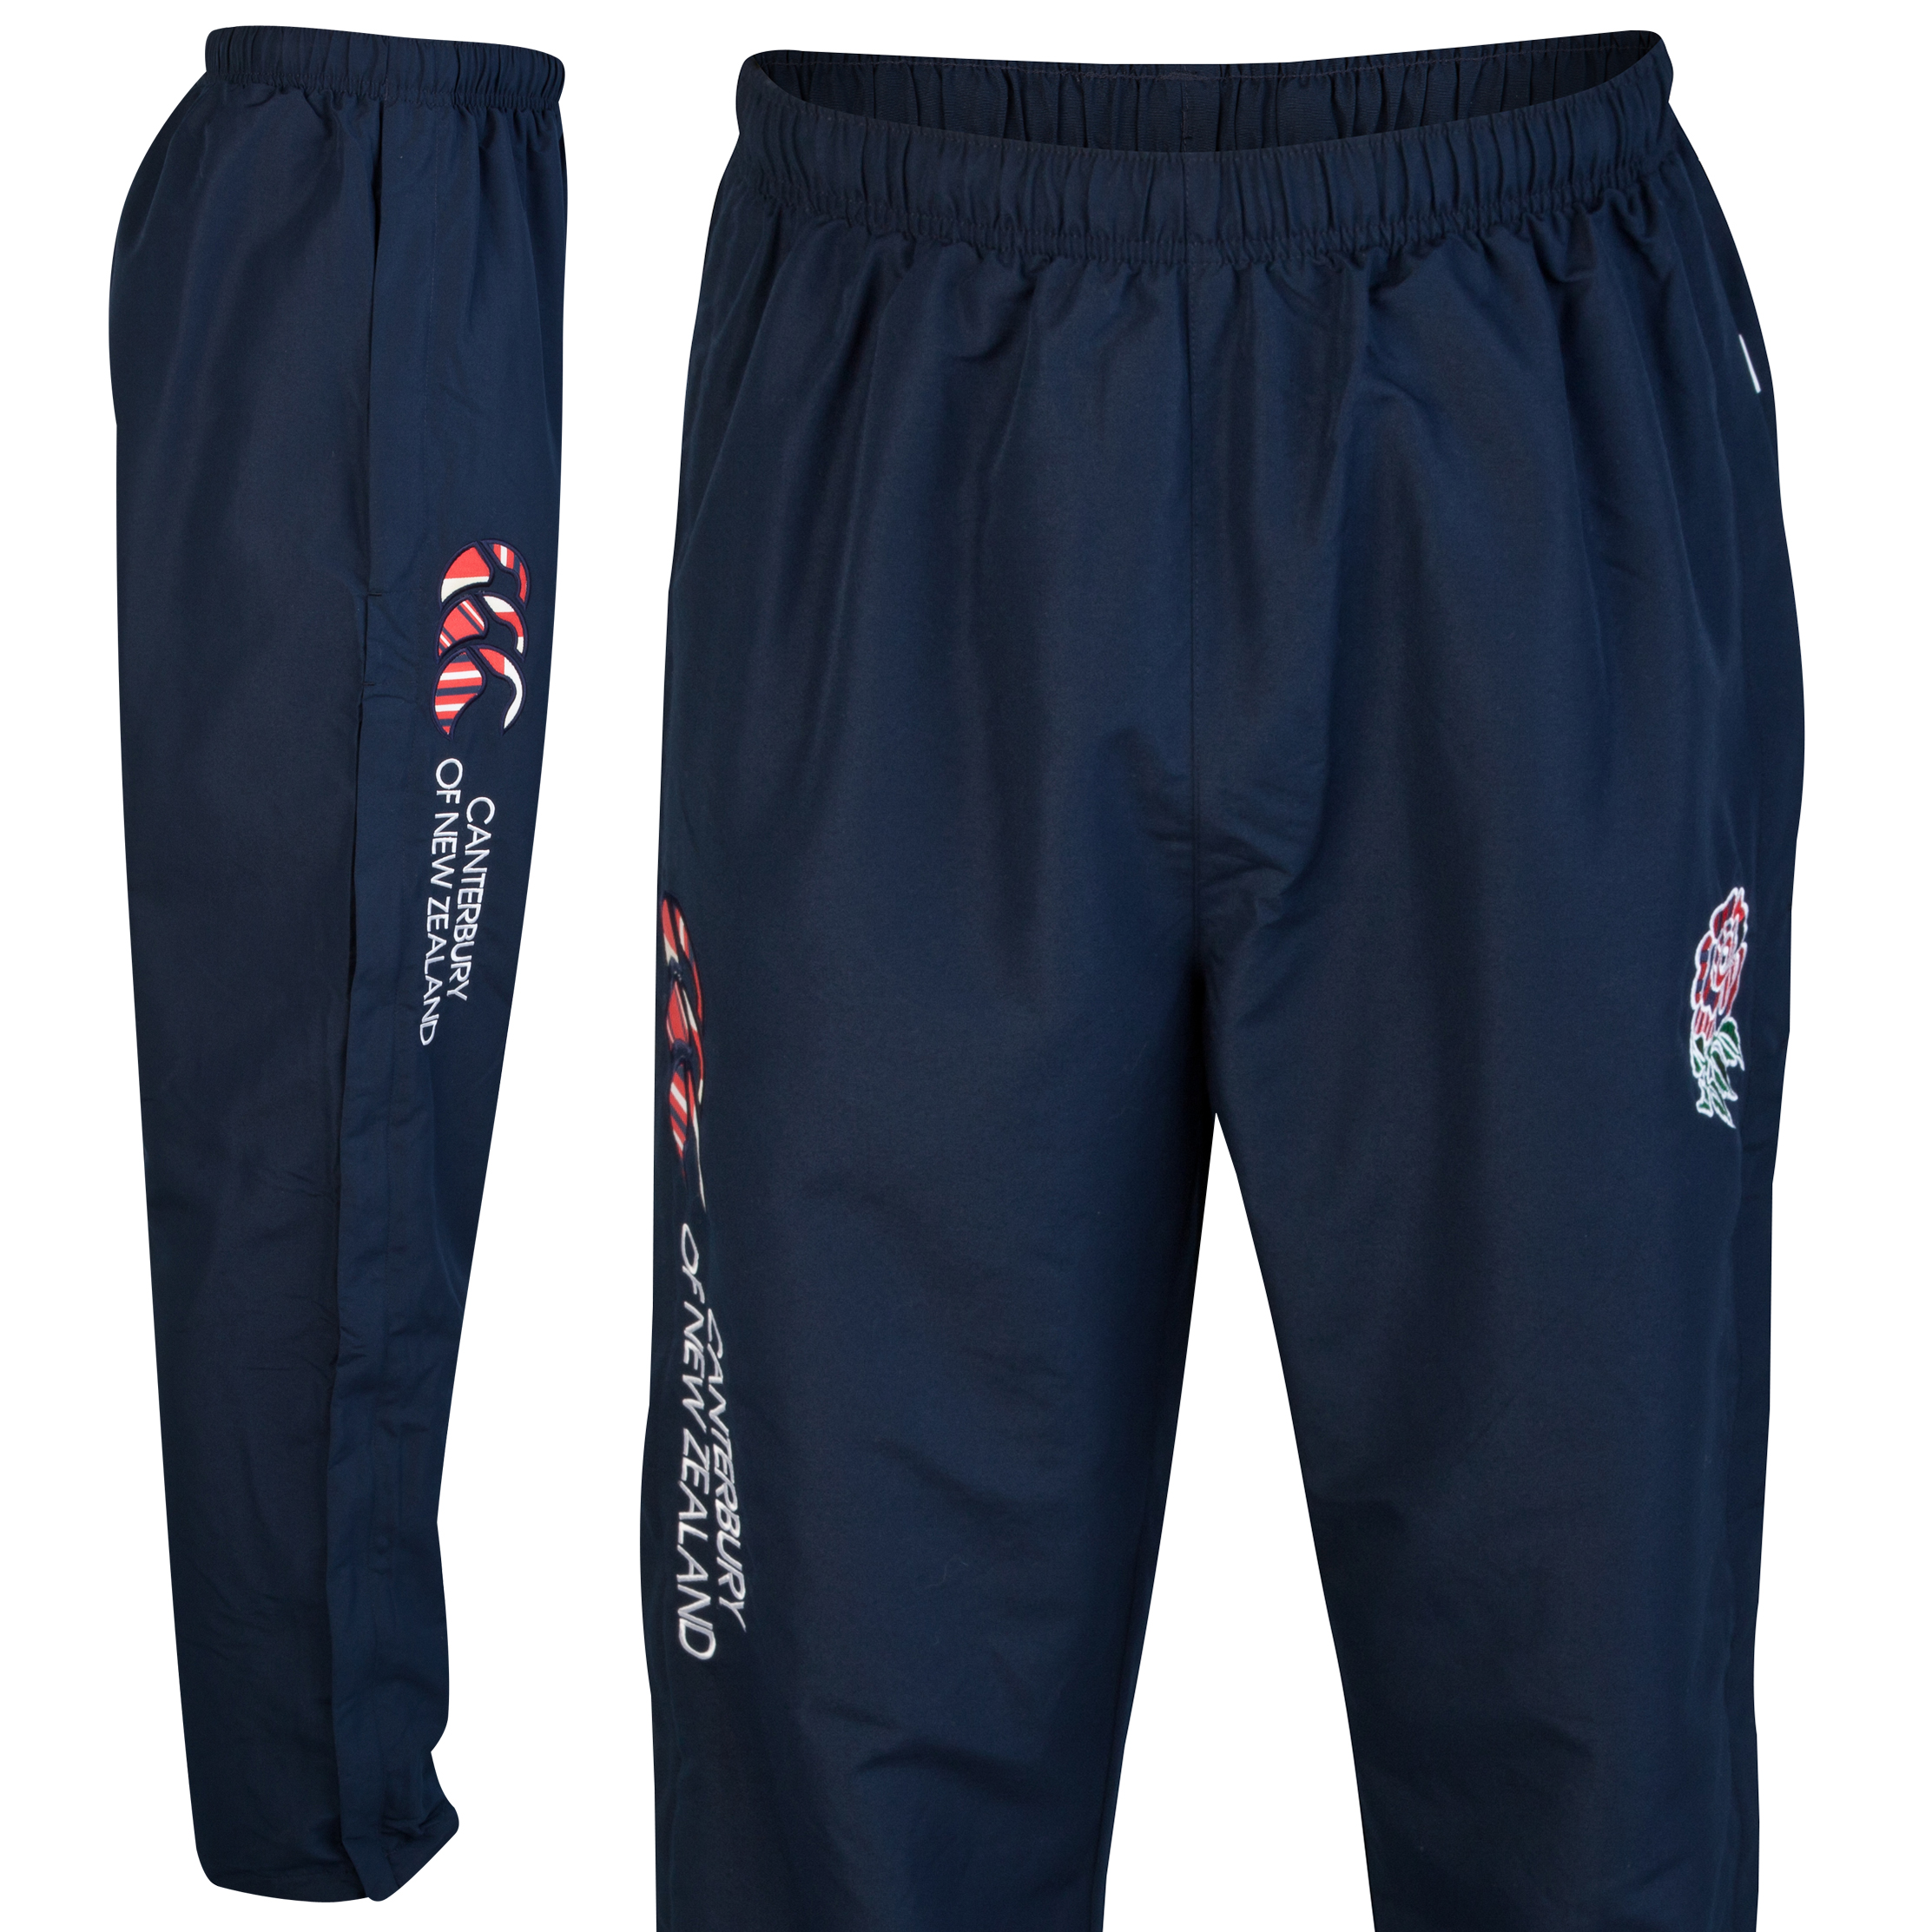 England Uglies Stadium Pants - Youths